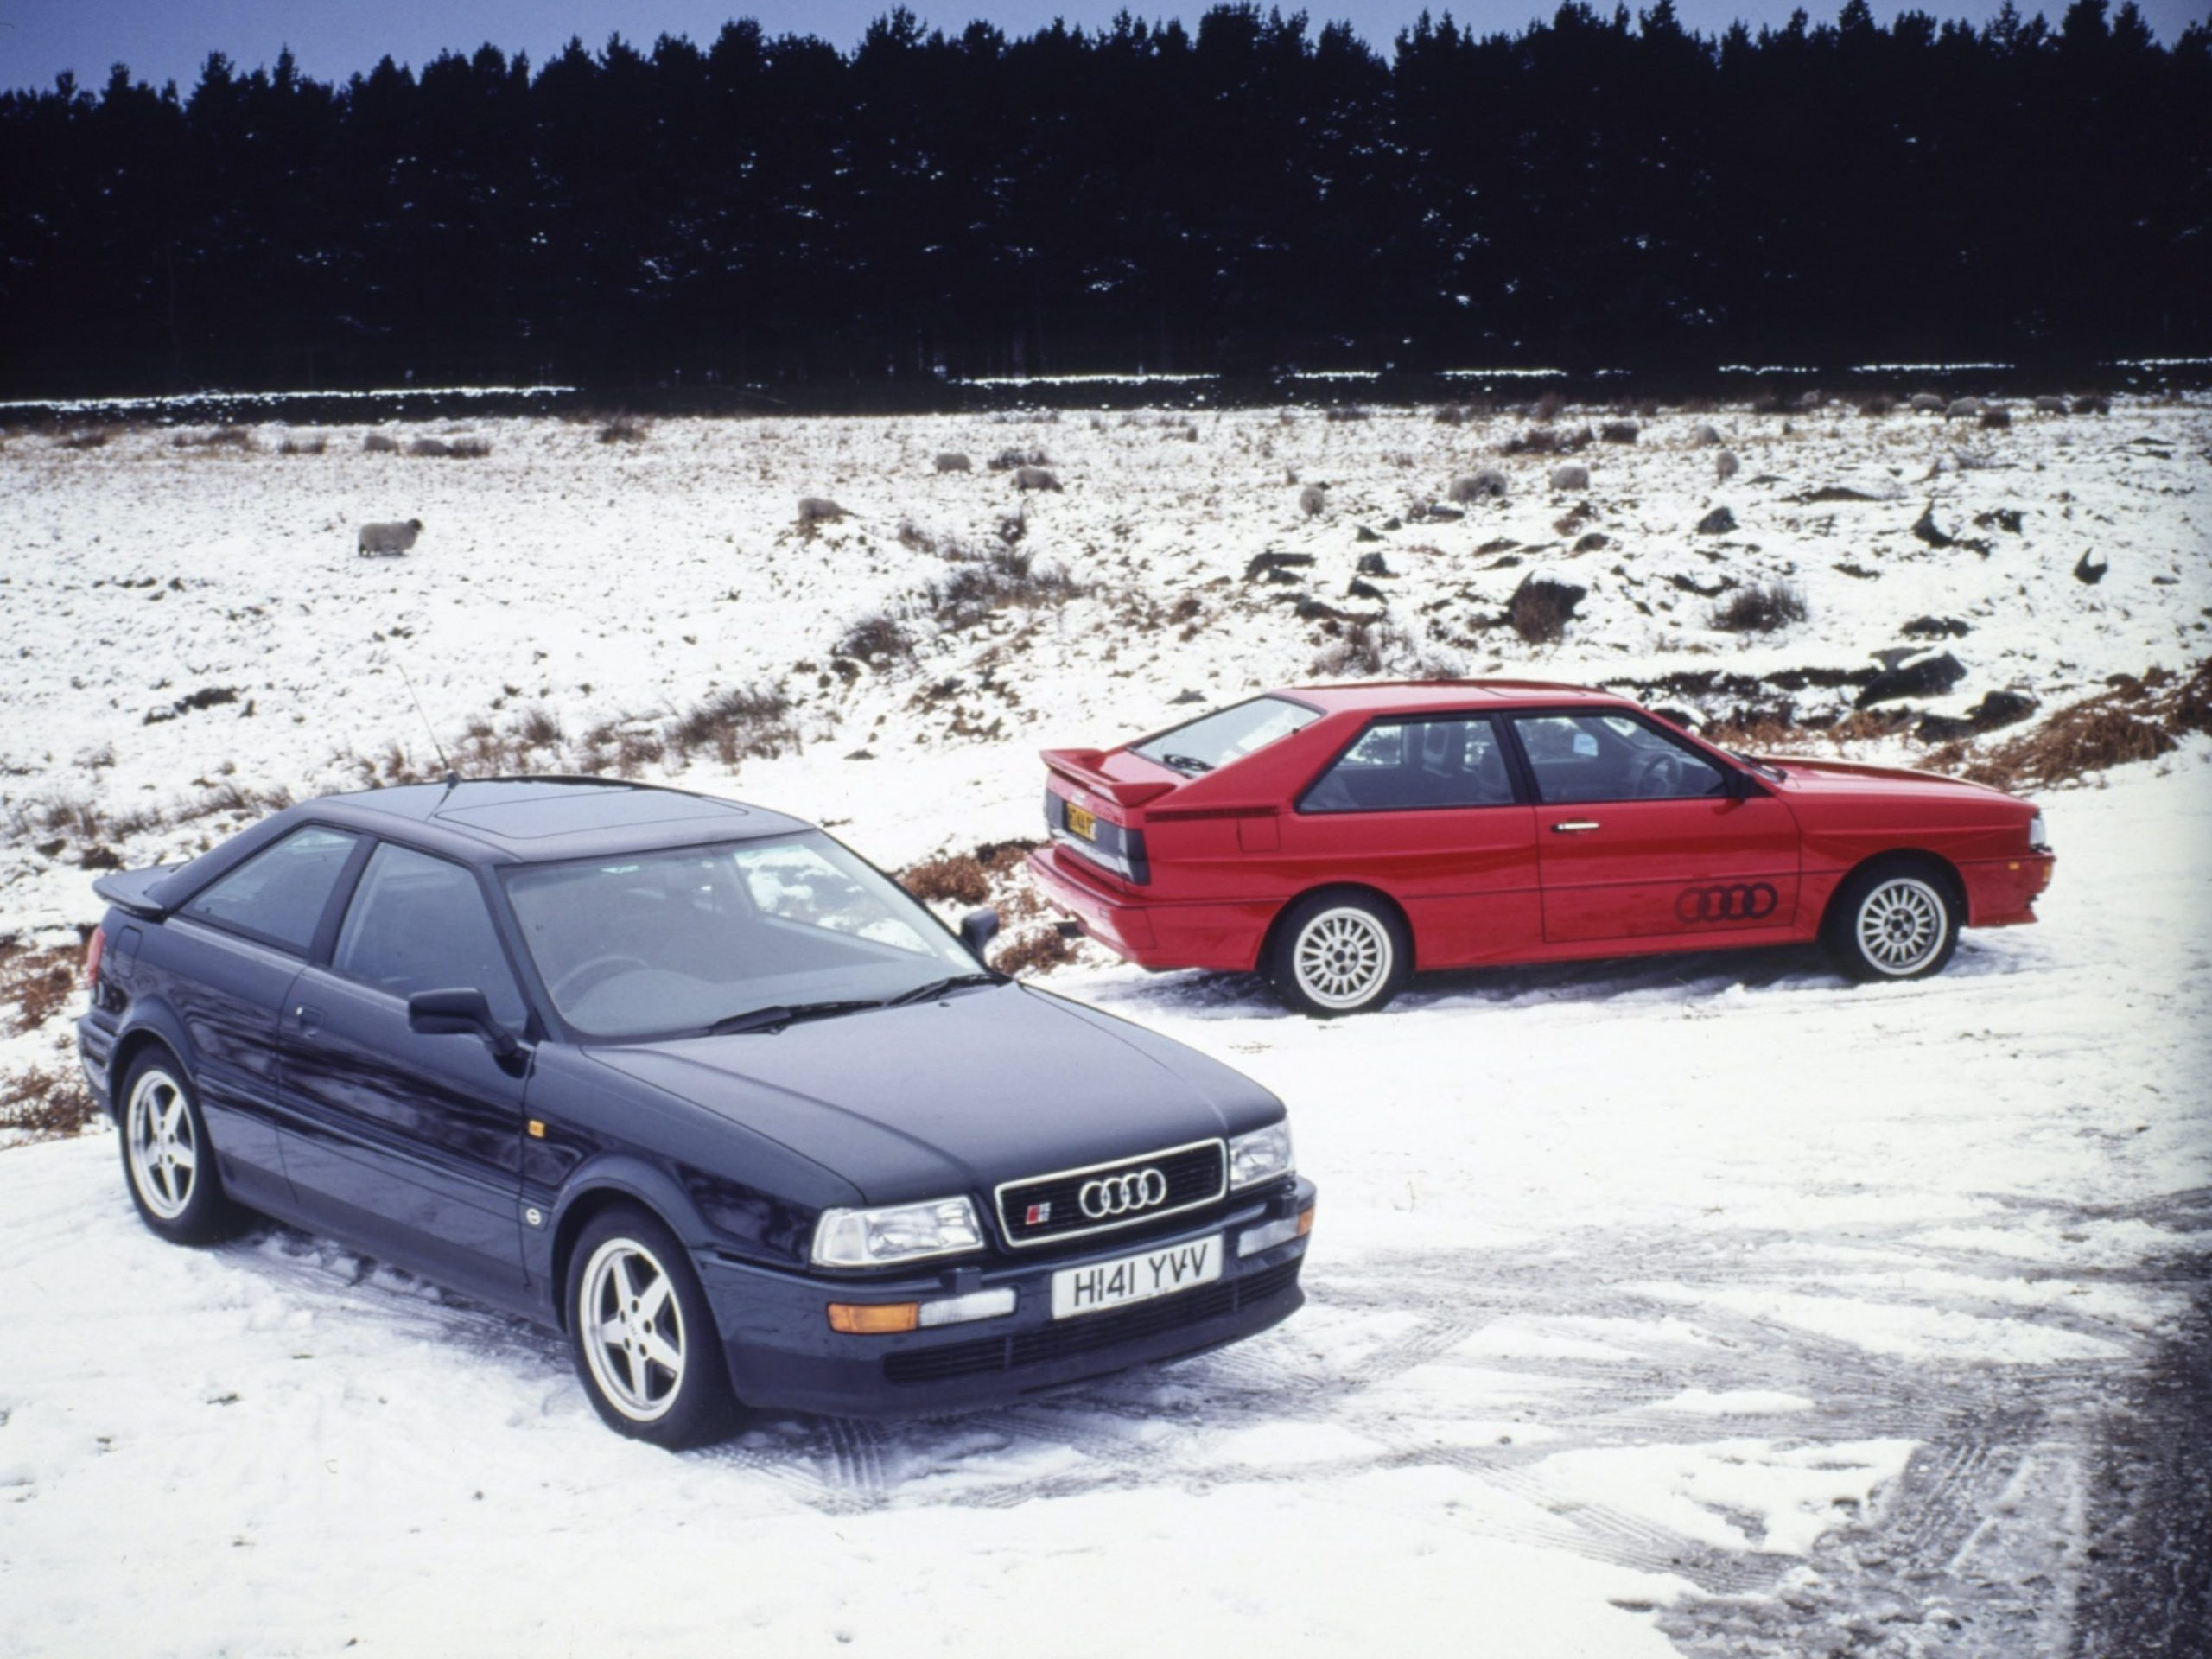 Winter warmers: 7 modern classics for all-weather fun